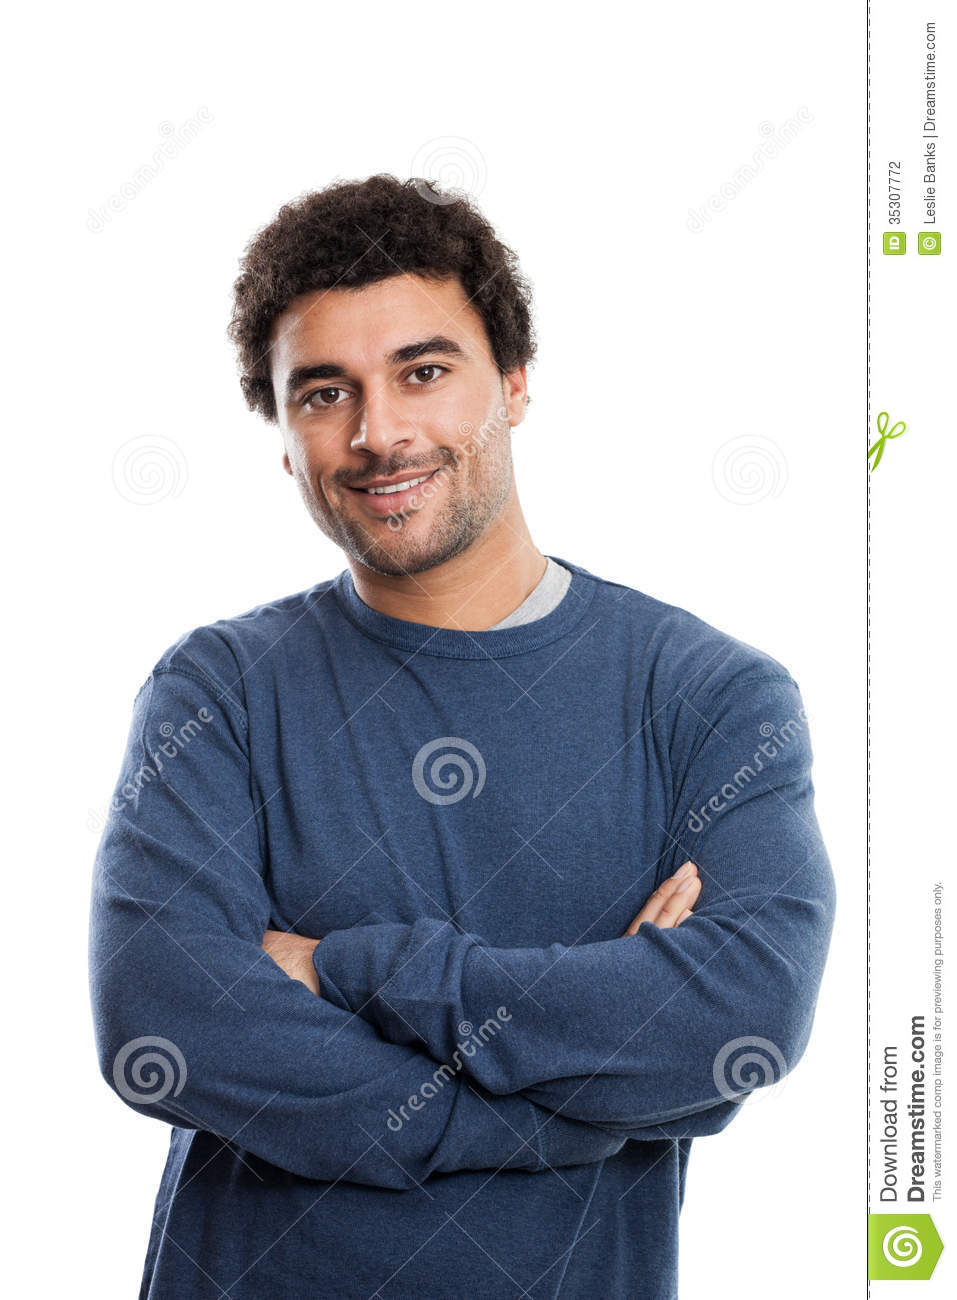 2002 Auto Electrical Wiring Diagram Yale Fork Lift Gc050rdnuae083 Handsome Middle Eastern Man Portrait Stock Photography